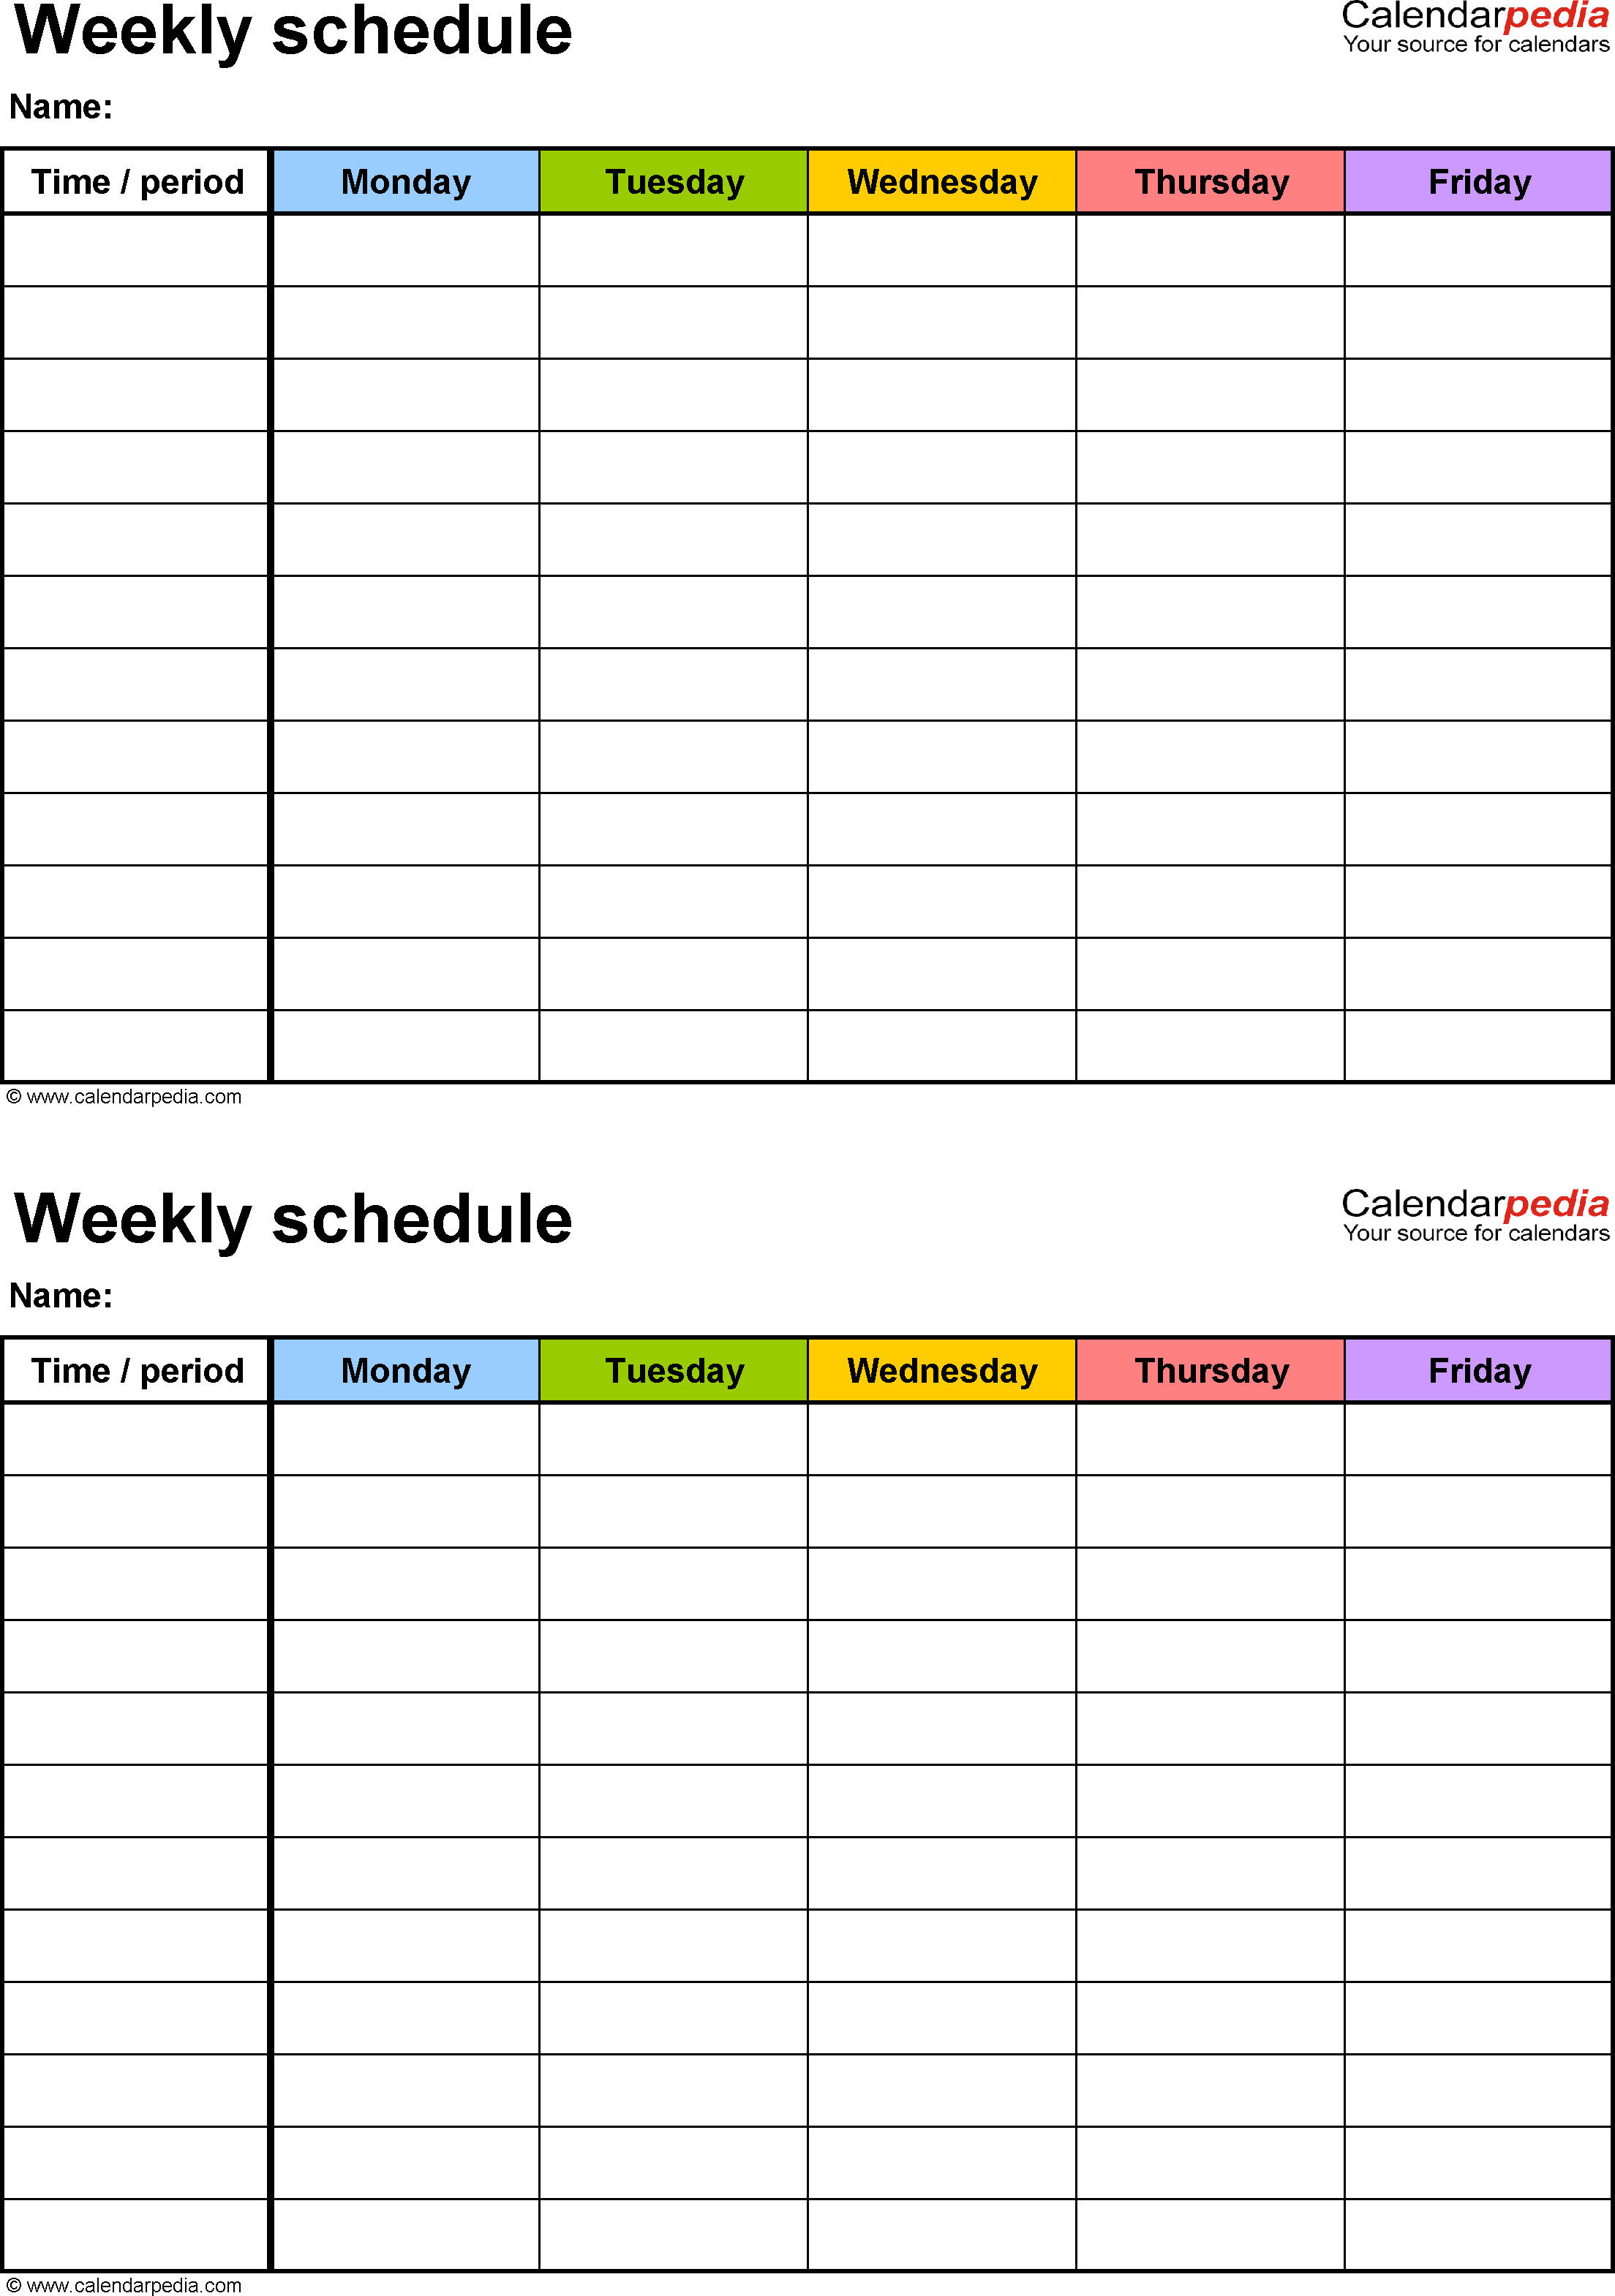 Free Weekly Schedule Templates For Word - 18 Templates with regard to 7 Day Weekly Planner Template